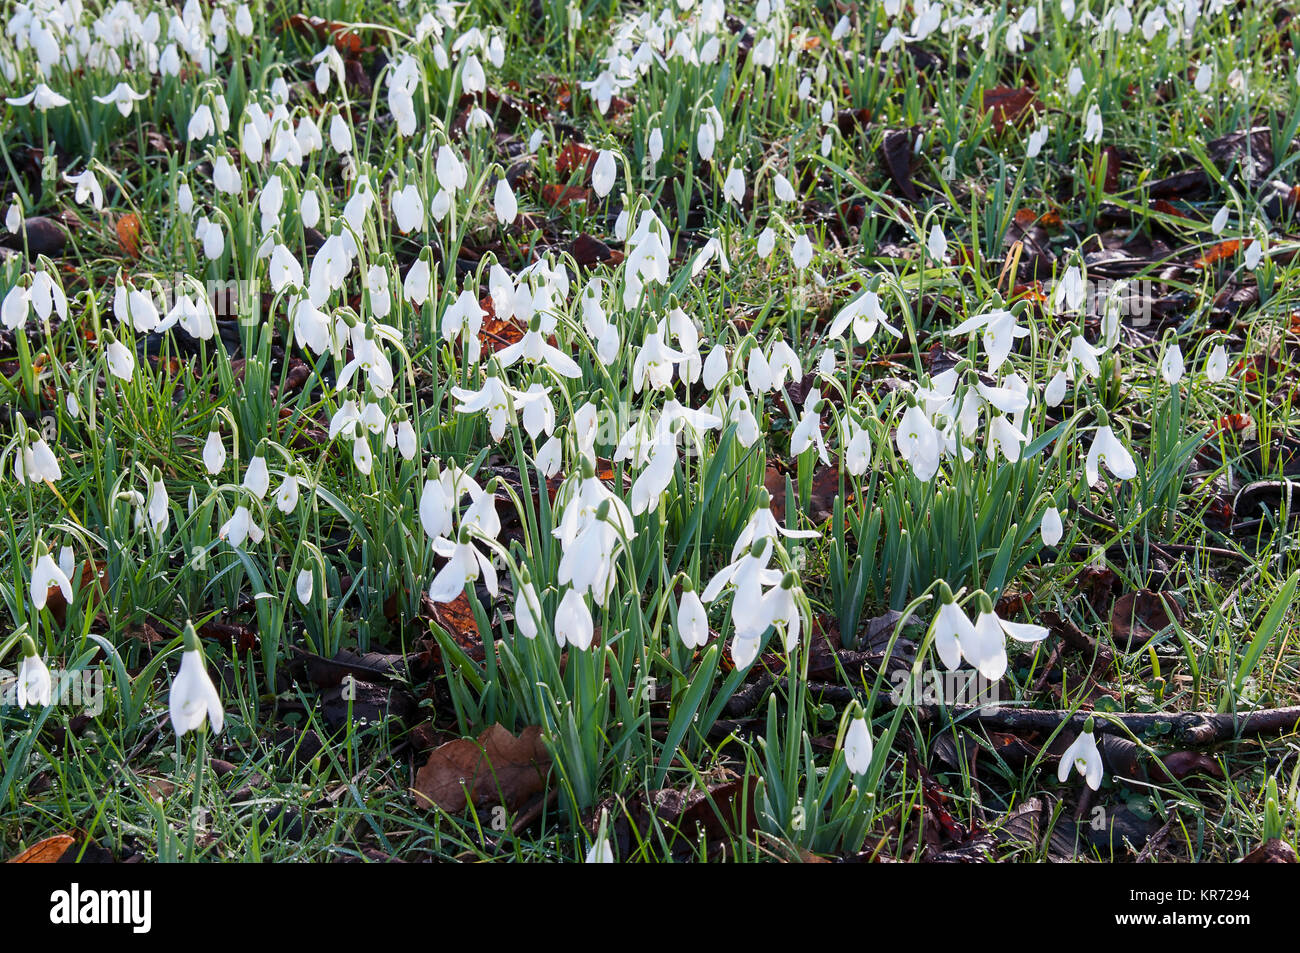 Snowdrop Galanthus Small White Flowers Growing Outdoor In Grass